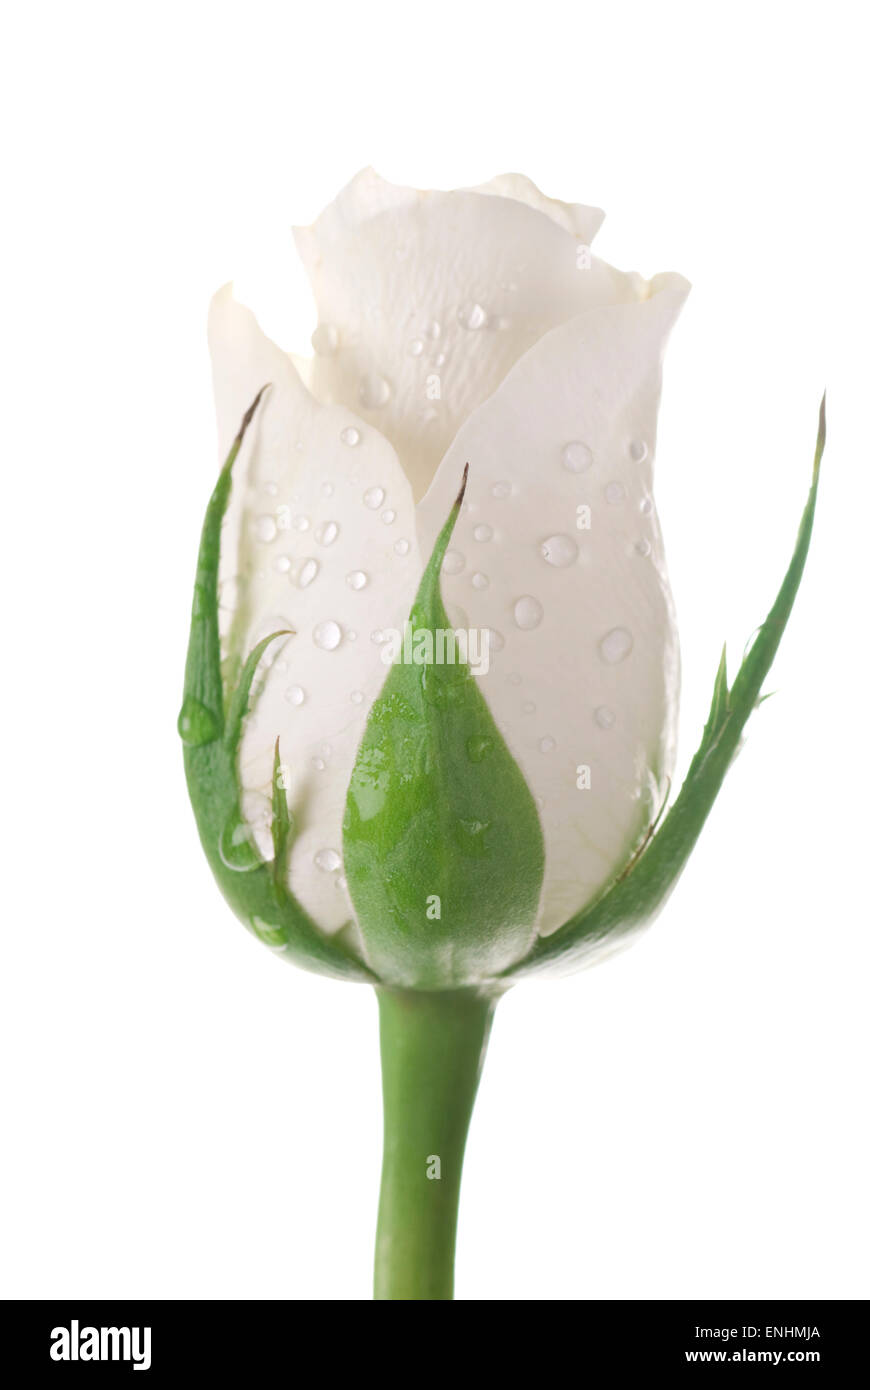 White rose with drops on white background. - Stock Image